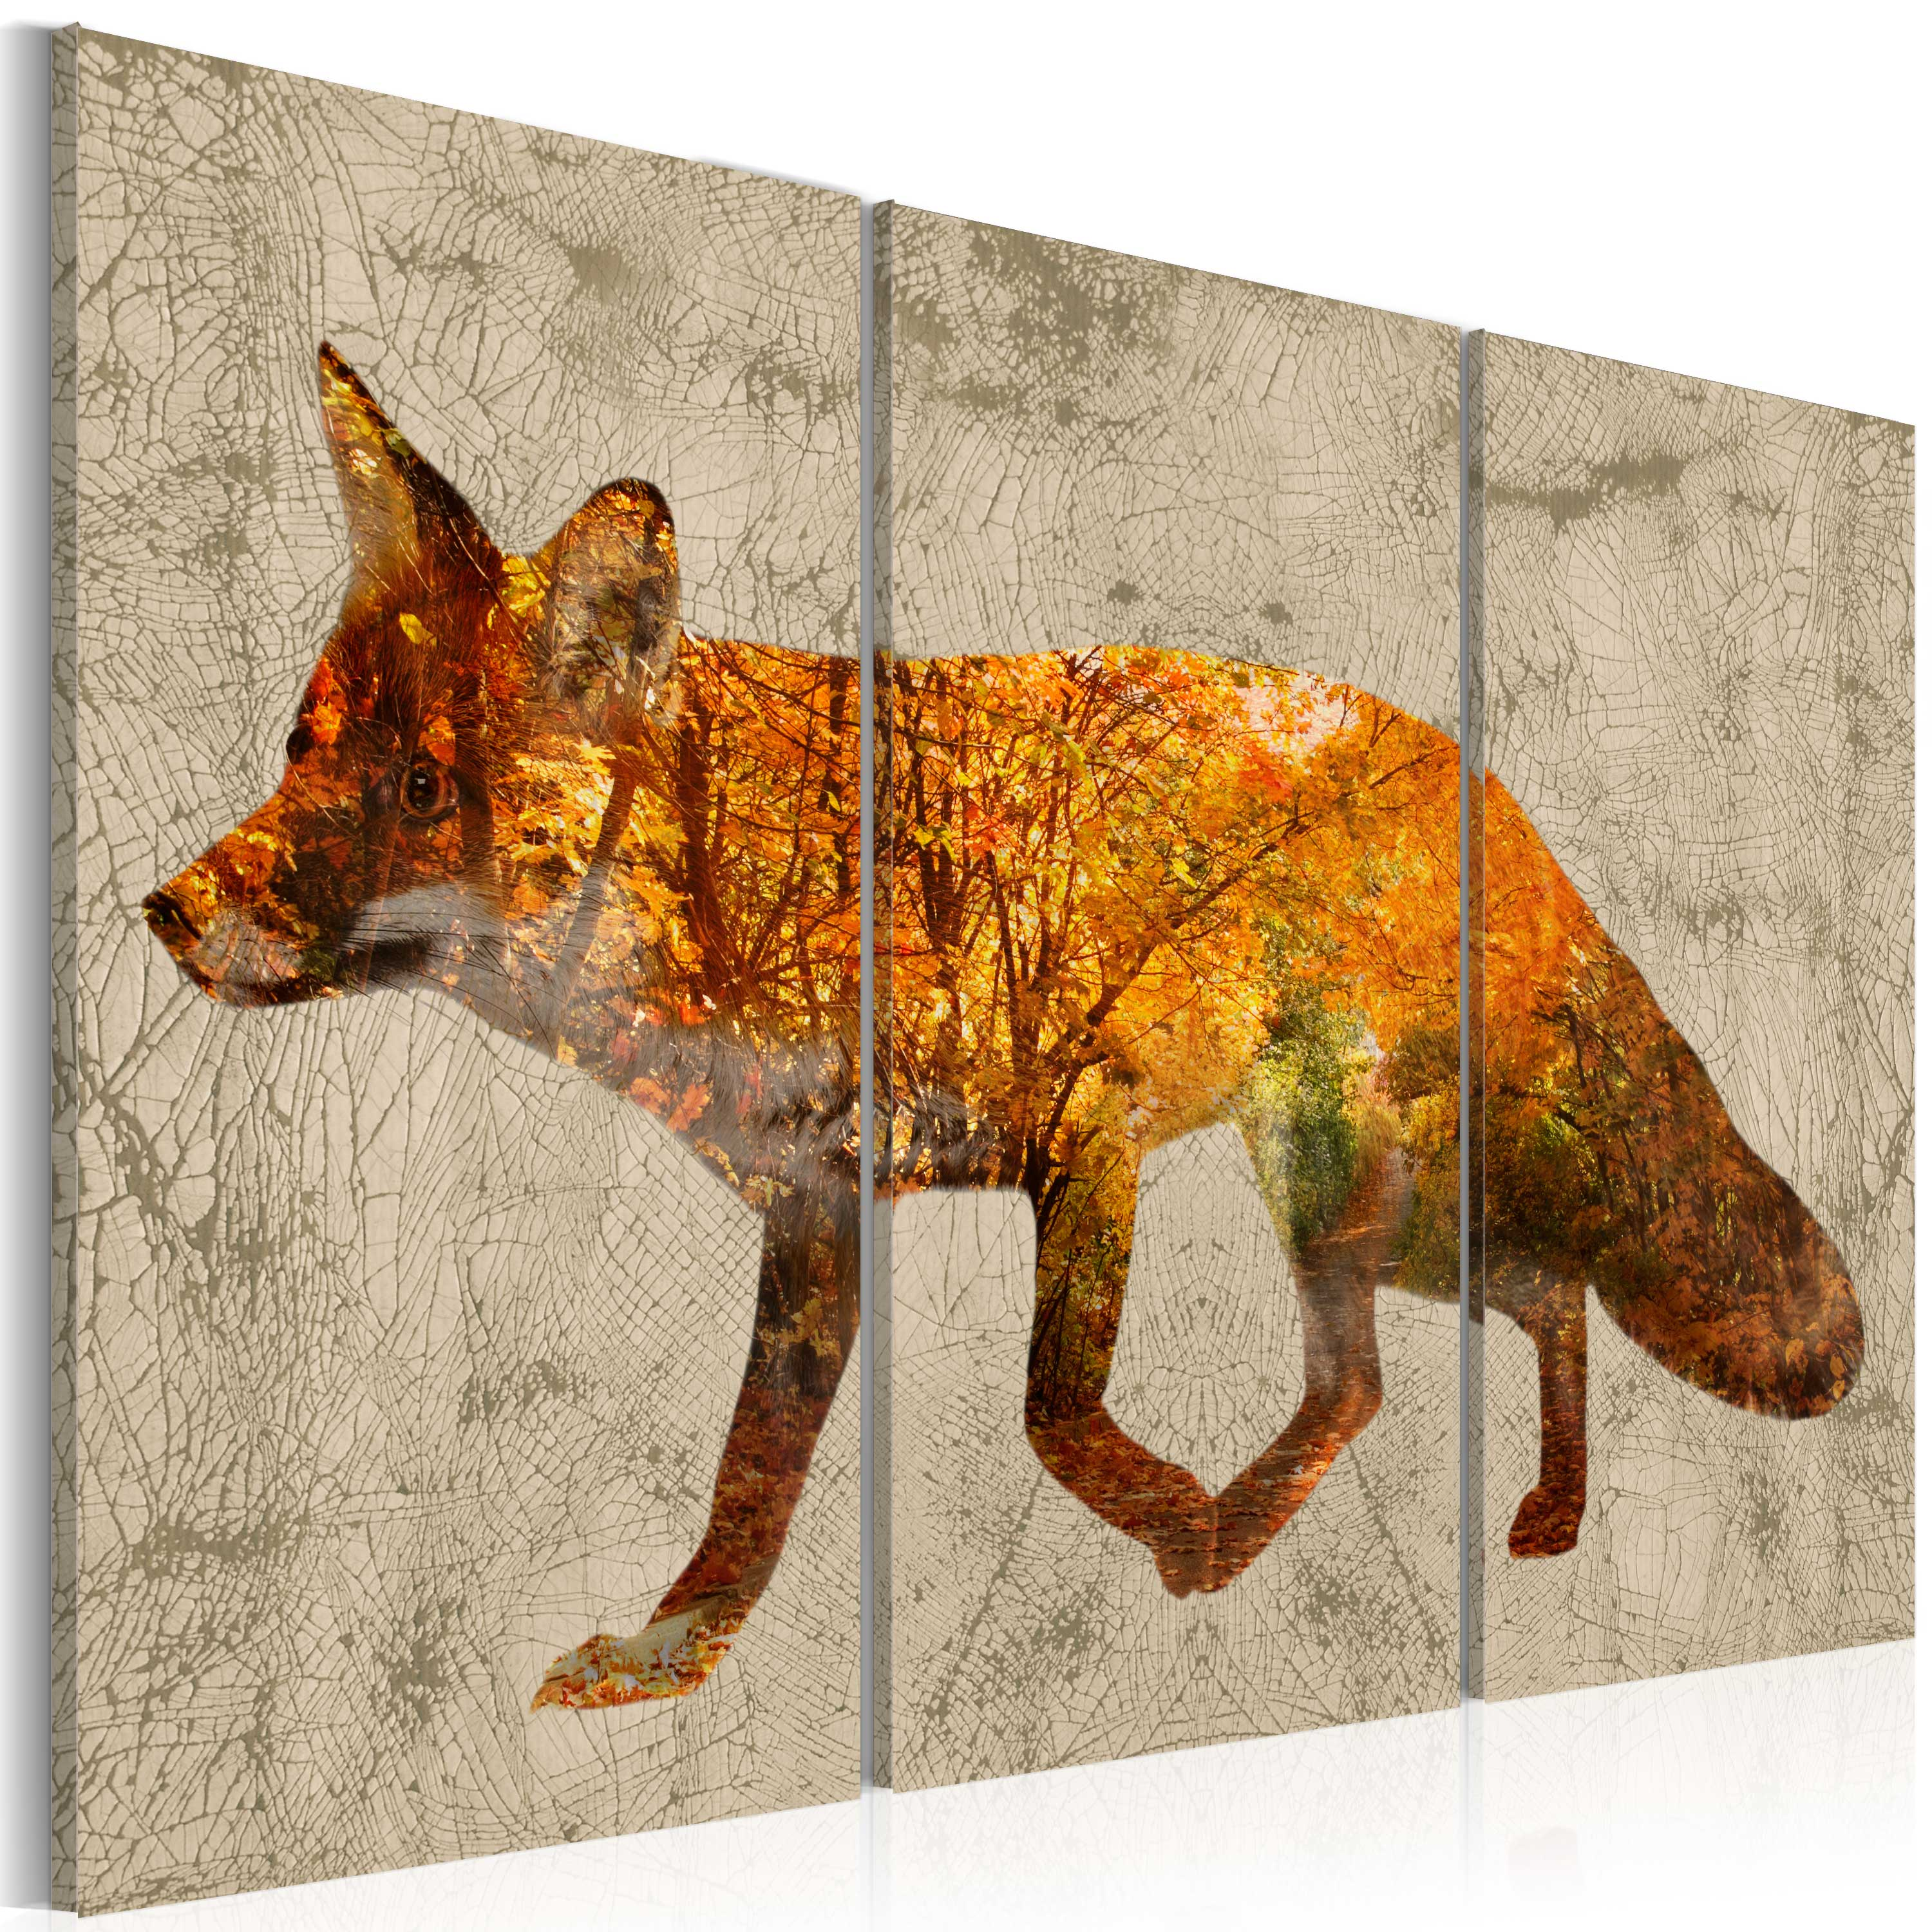 Obraz - Fox in The Wood 120x80